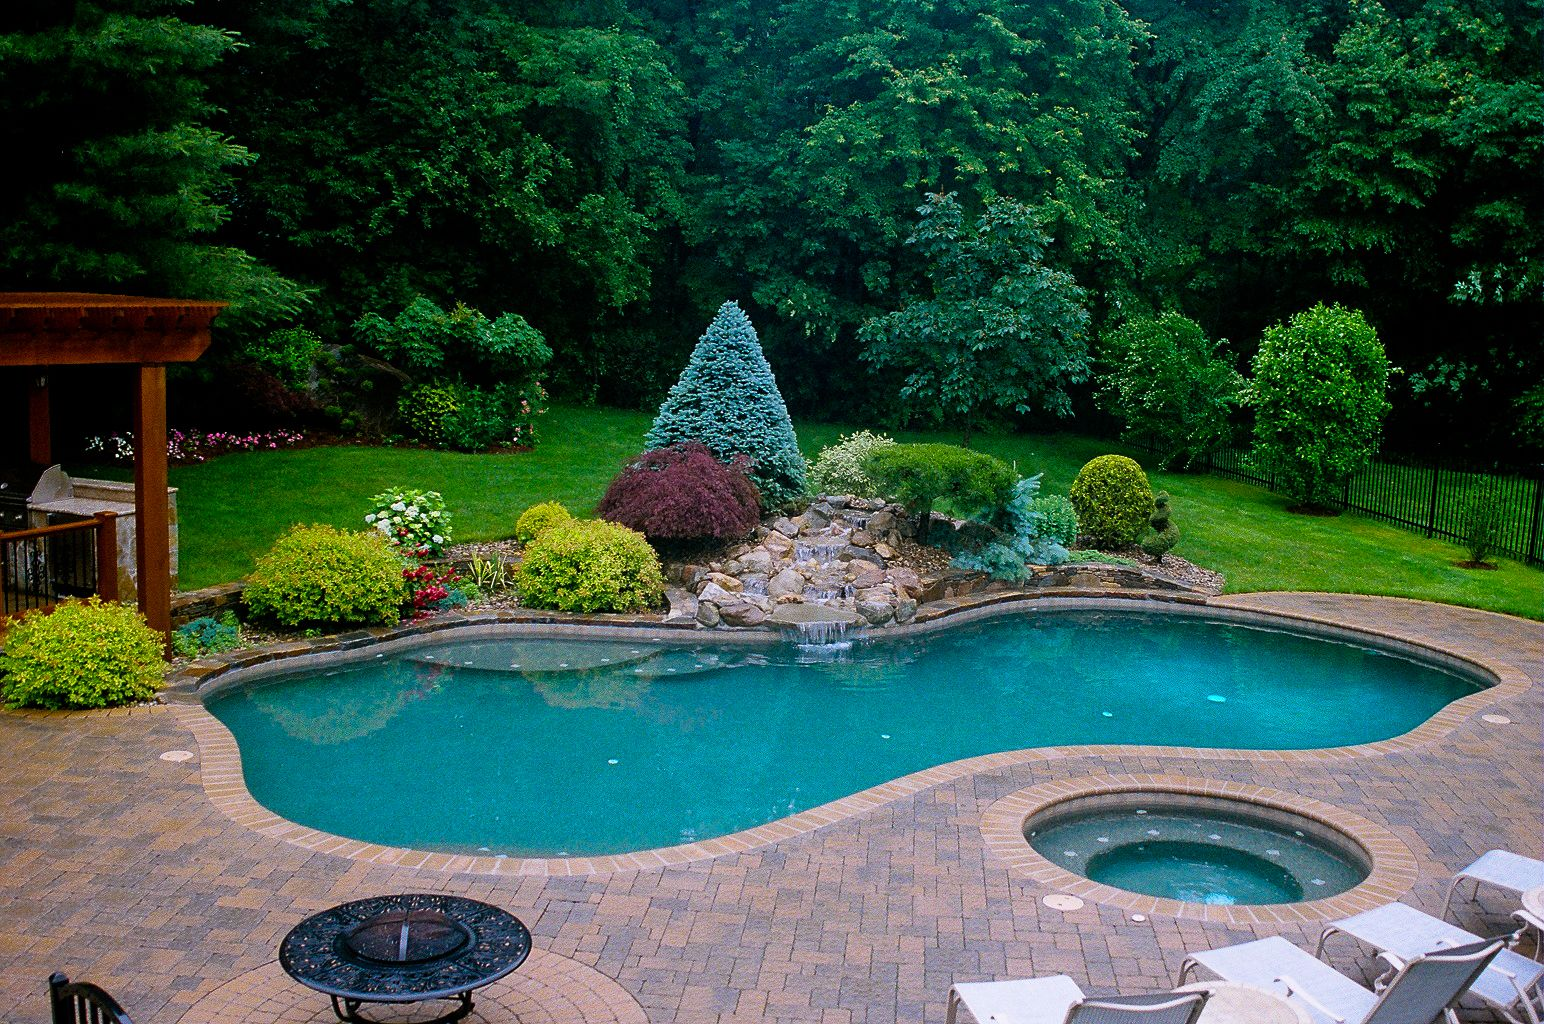 plunging pools and landscaping | Backyard pool landscaping ... on Backyard Inground Pool Landscaping Ideas id=59514